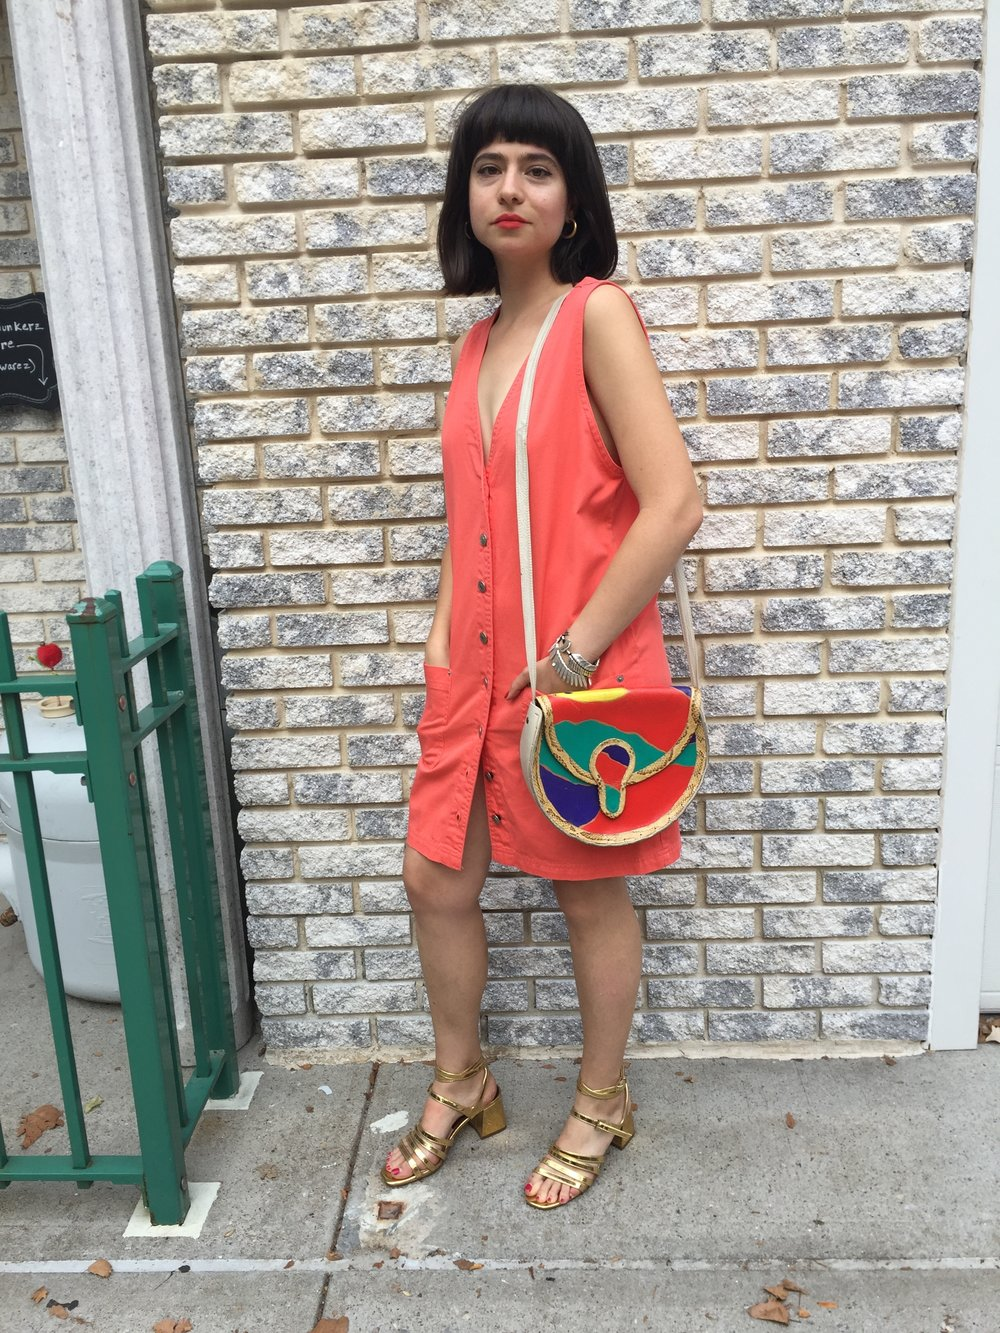 salmon denim smock dress / coral button front chambray dress ,handmade designer vintage Mille Fiori purse / bold leather cross body bag with snakeskin details